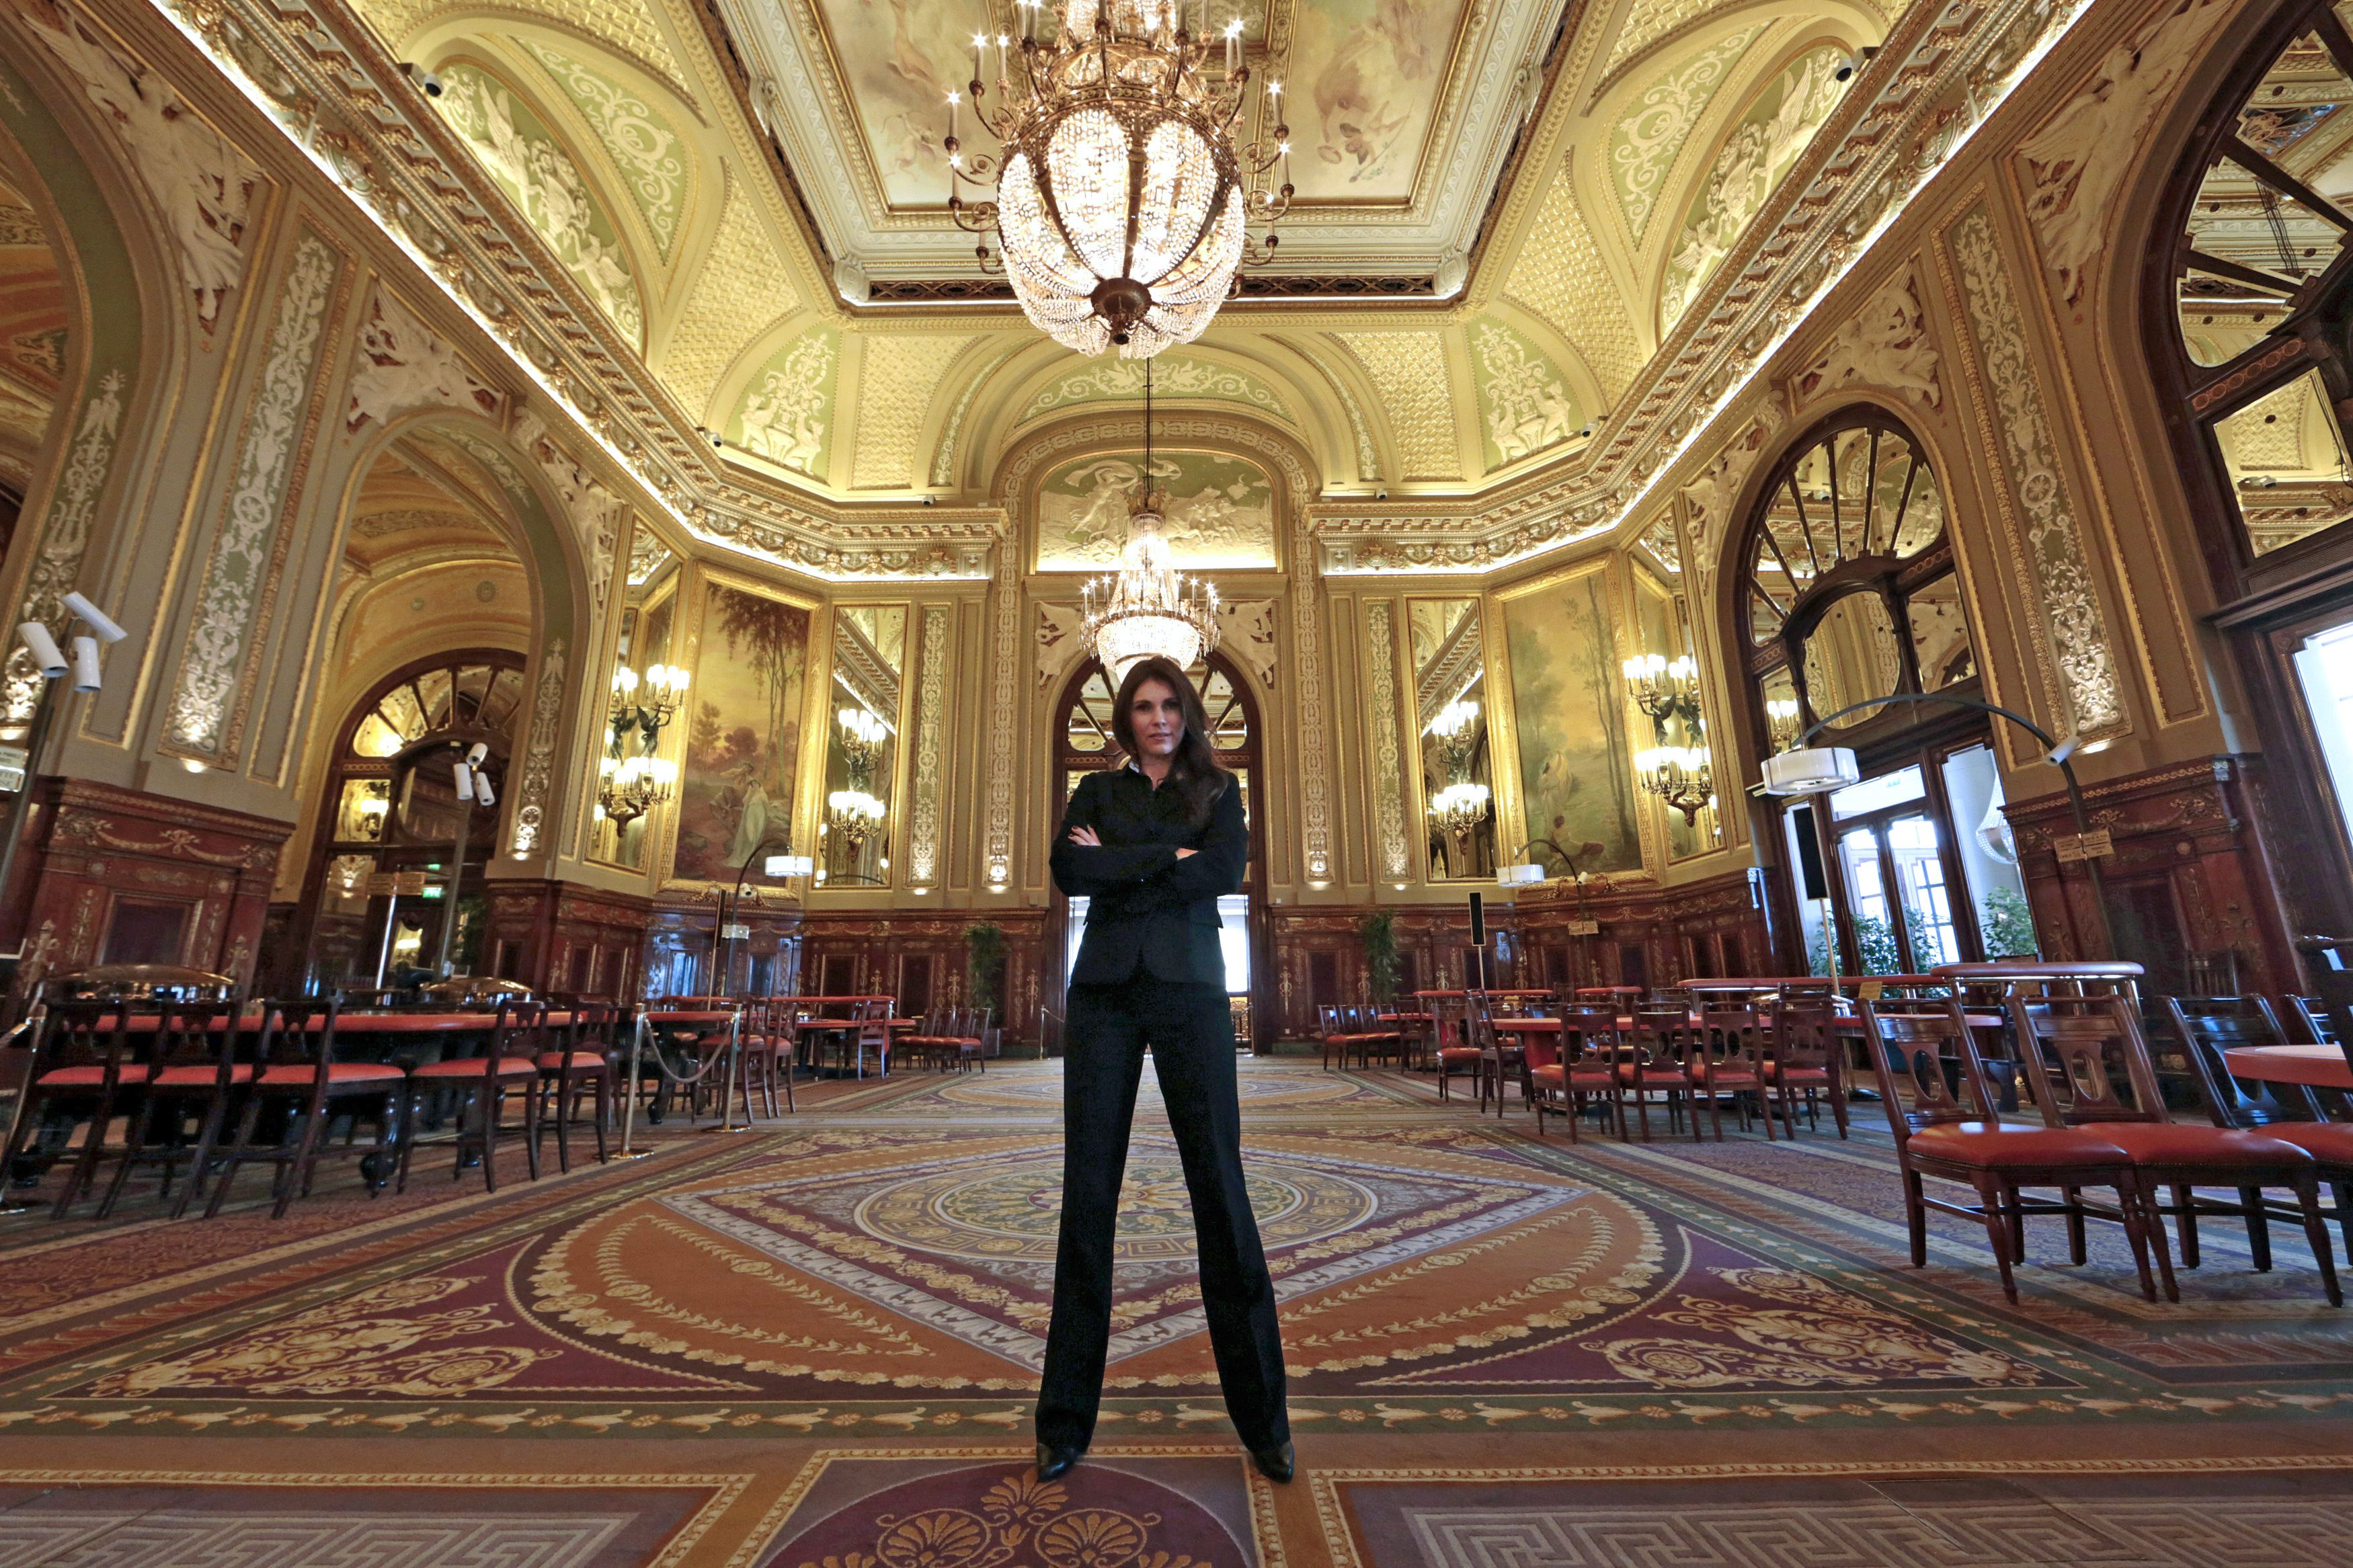 Here's A Rare Look Inside The Monte Carlo Casino, The World's Most Spectacular Gambling Den | Business Insider